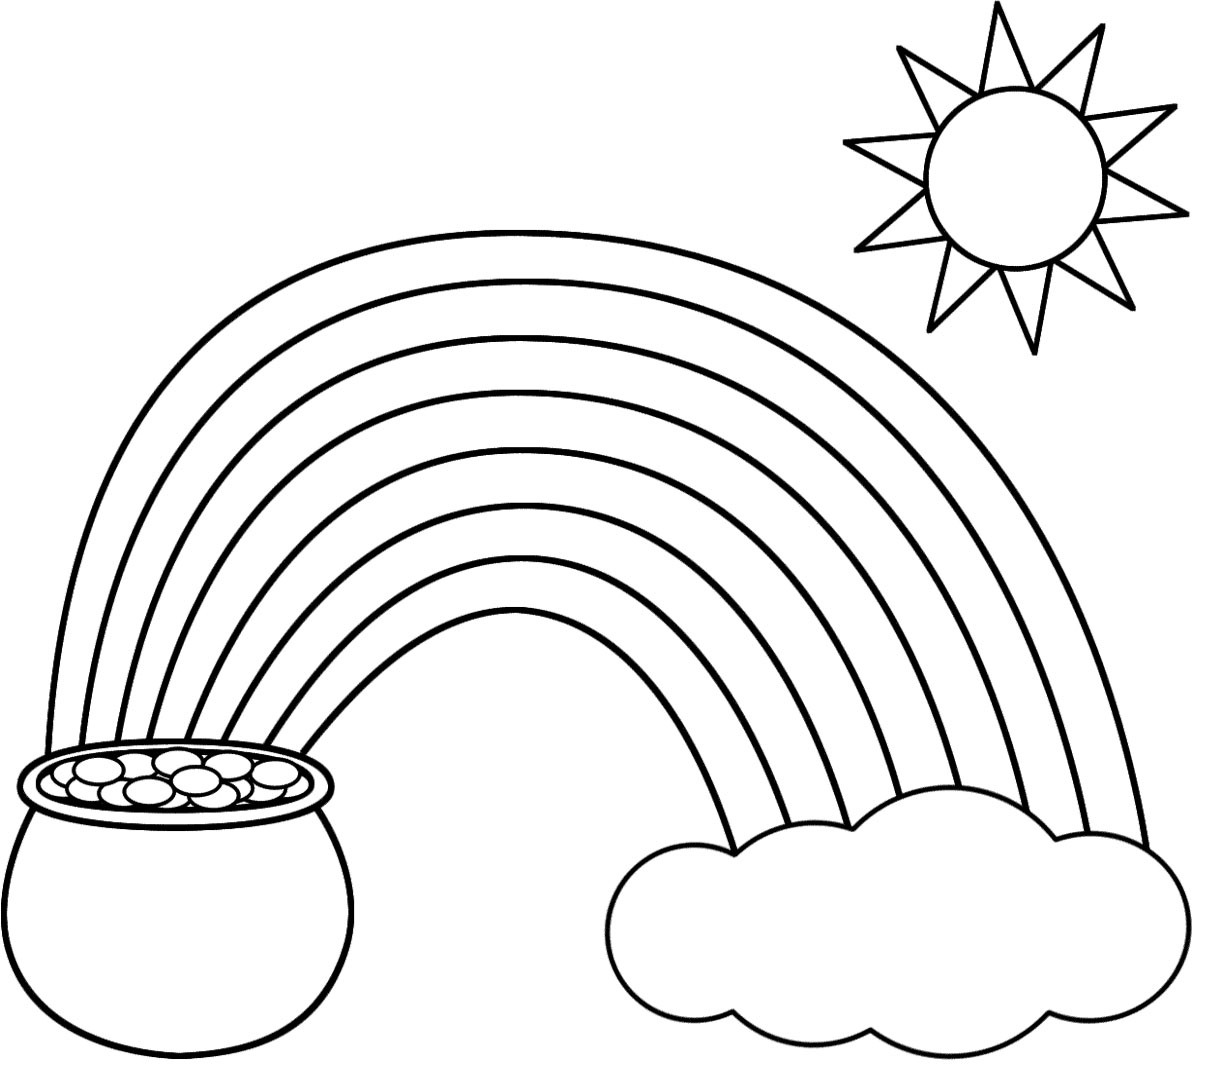 Rainbow And Pot Of Gold Coloring Pages At Getdrawings